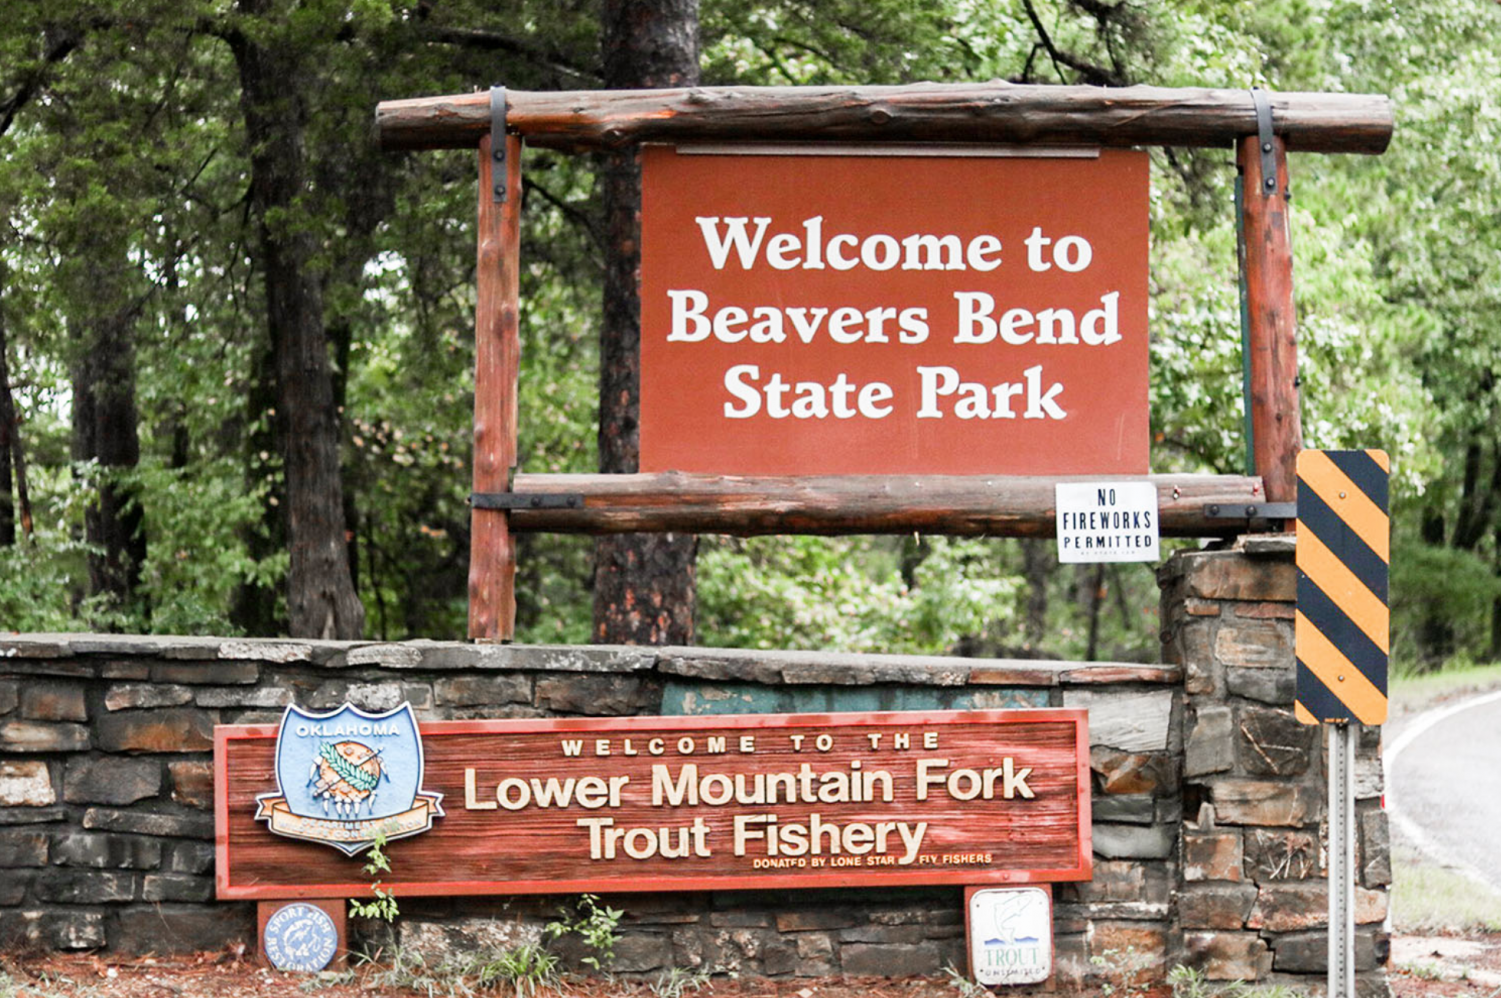 Beavers Bend State Park is hosting a festival and craft show. People from the Texarkana area participated in the past.